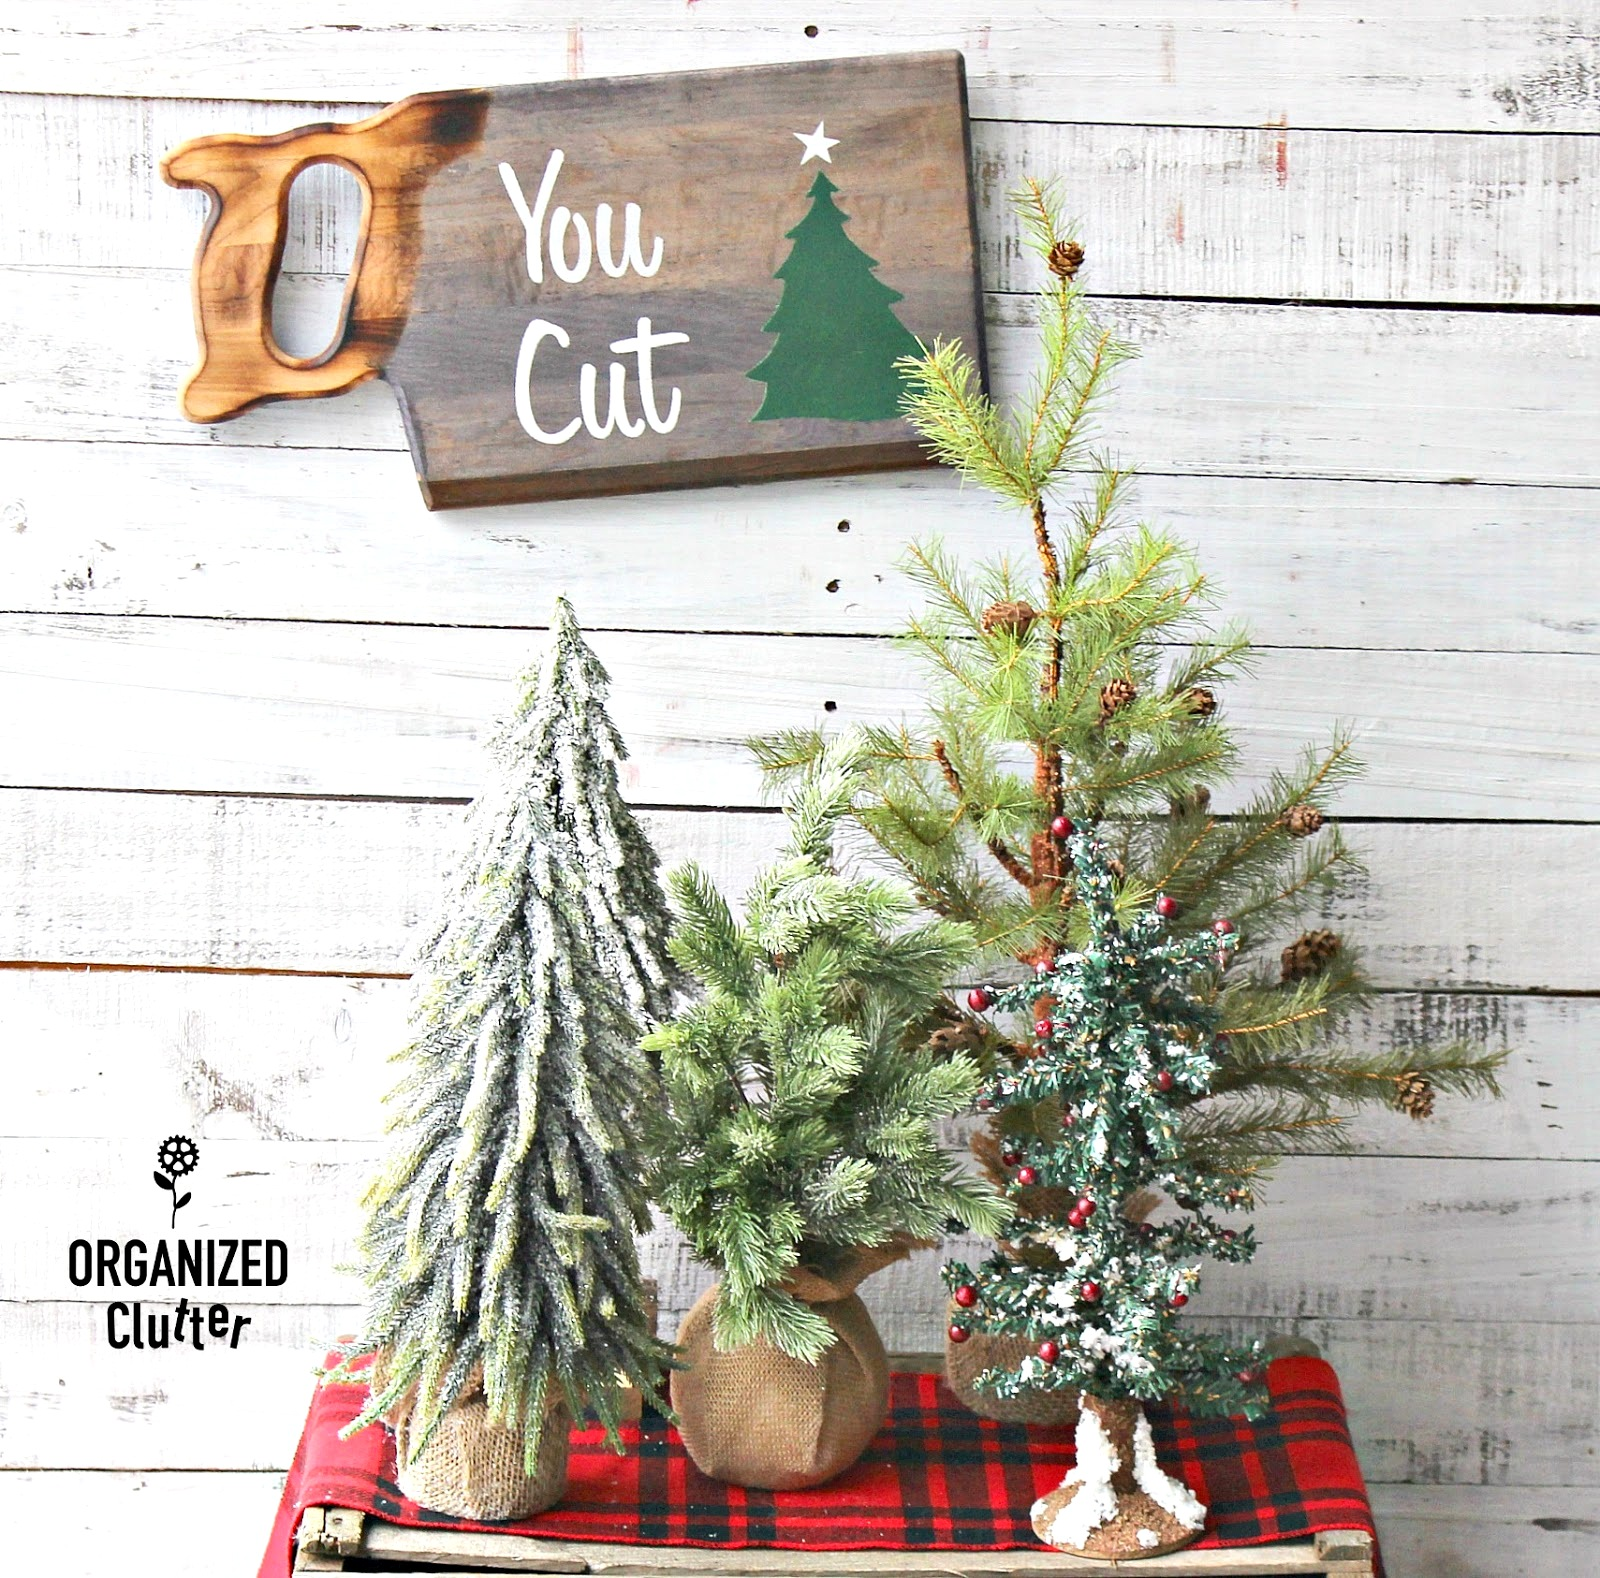 You Cut Christmas tree saw sign from a cutting board by Organized Clutter, featured on Funky Junk Interiors